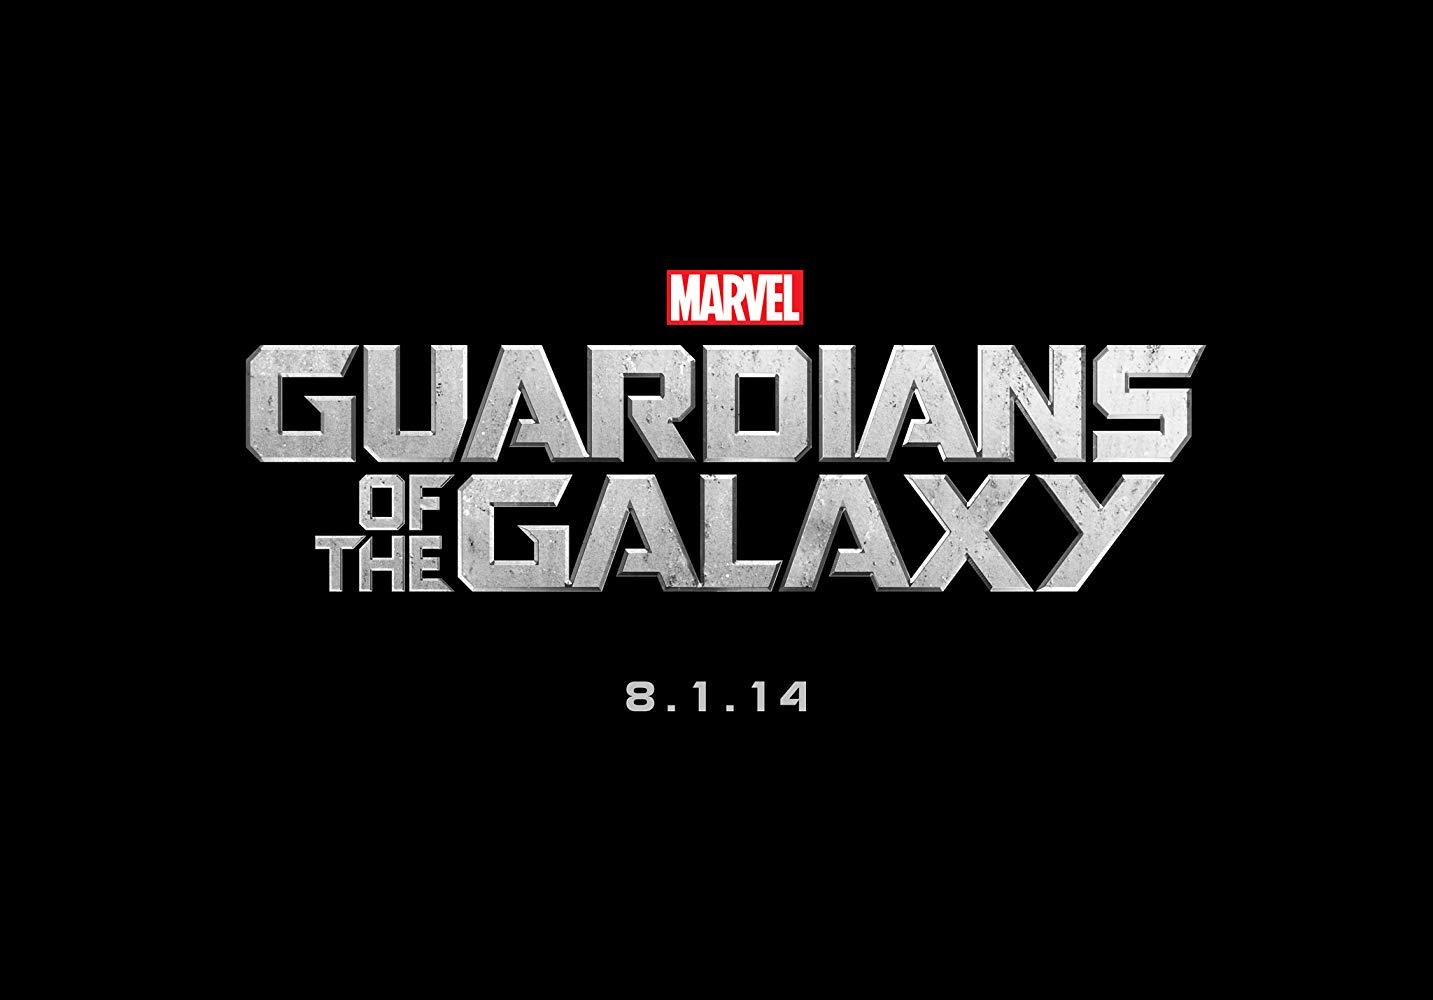 مشاهدة فيلم Guardians of the Galaxy (2014) مترجم HD اون لاين